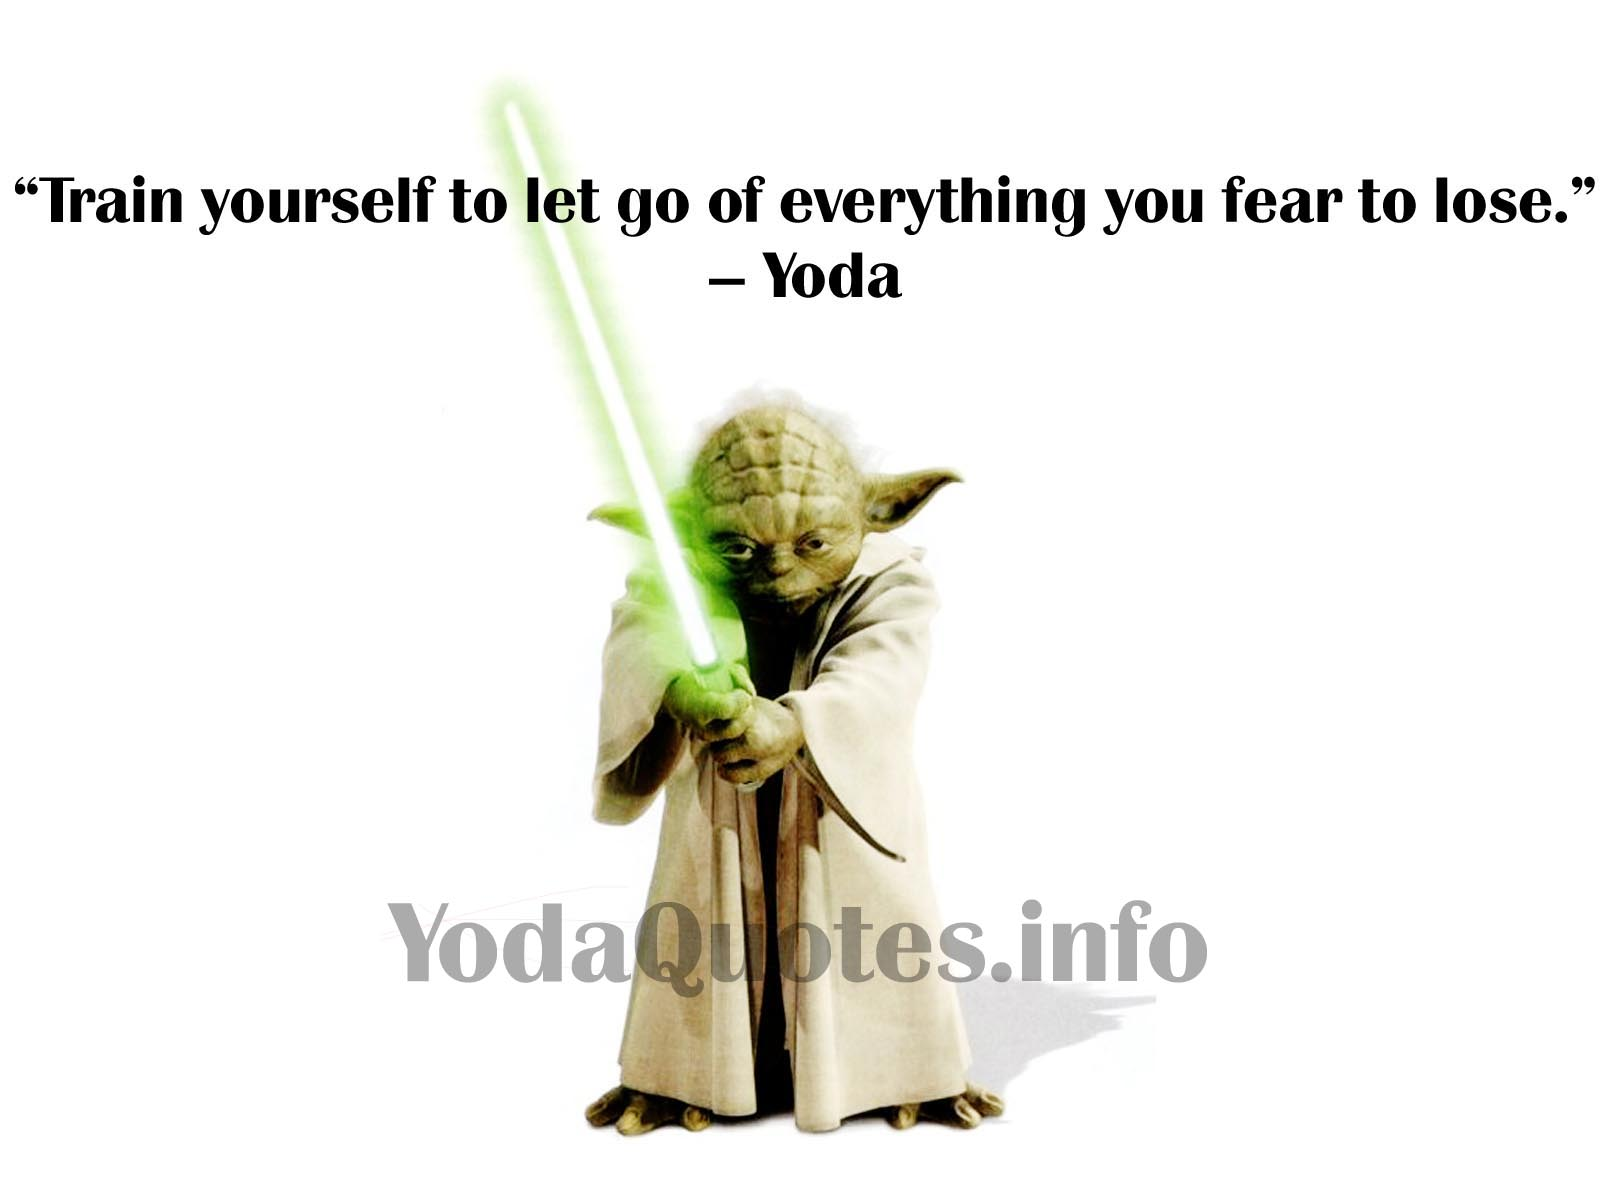 Yoda Quotes Wisdom Yoda Quotes Fear Yoda Quotes Future Yoda Quotes